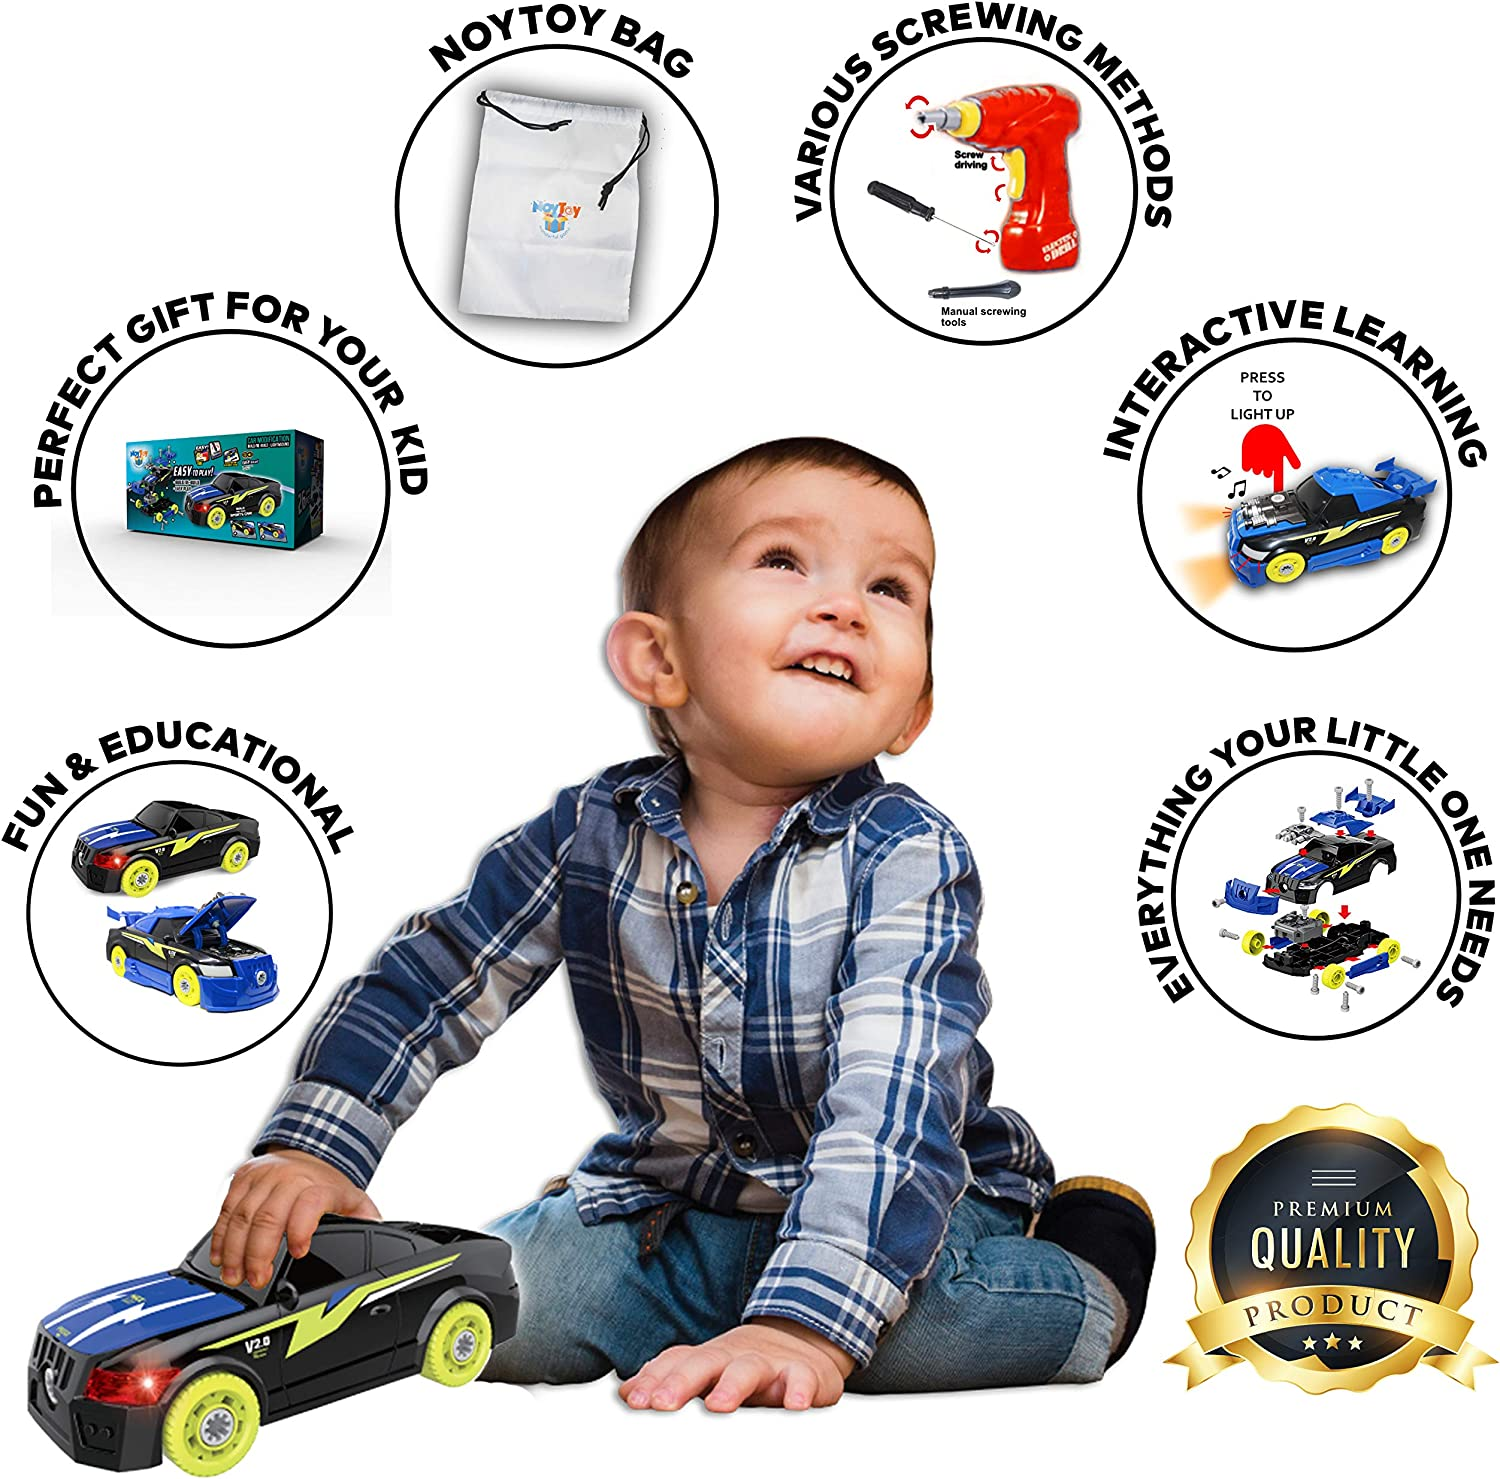 STEM Toys Gift for Boys and Girls 3 4 5 6 7 Year Old 26 Pcs DIY Car Educational Toy Kit 2 in 1 Take Apart Toy Racing Car with Electrical Drill Tool and Screws Storage Bag Build Your Own Car Set